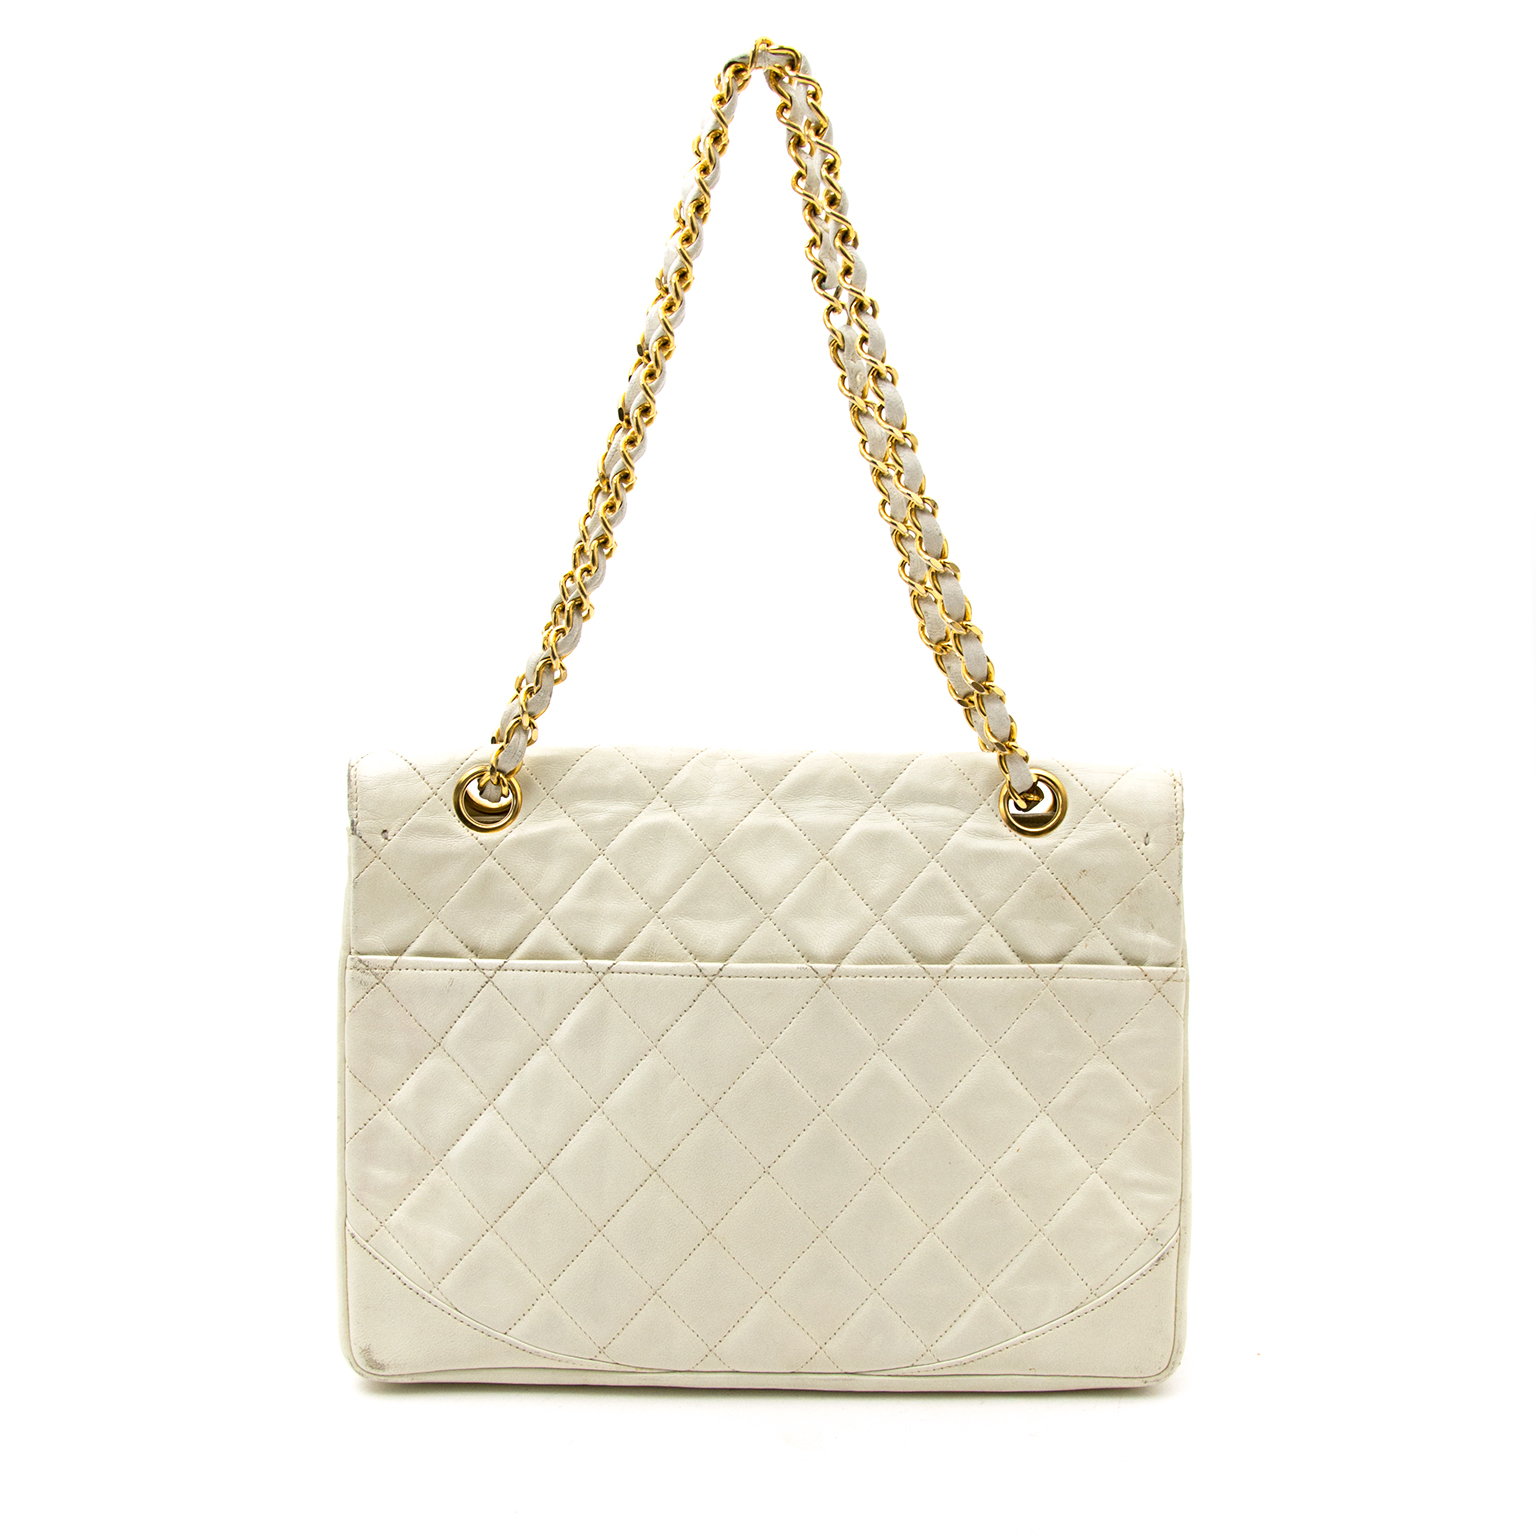 Buy this secondhand Chanel White Vintage Flapbag at the right price